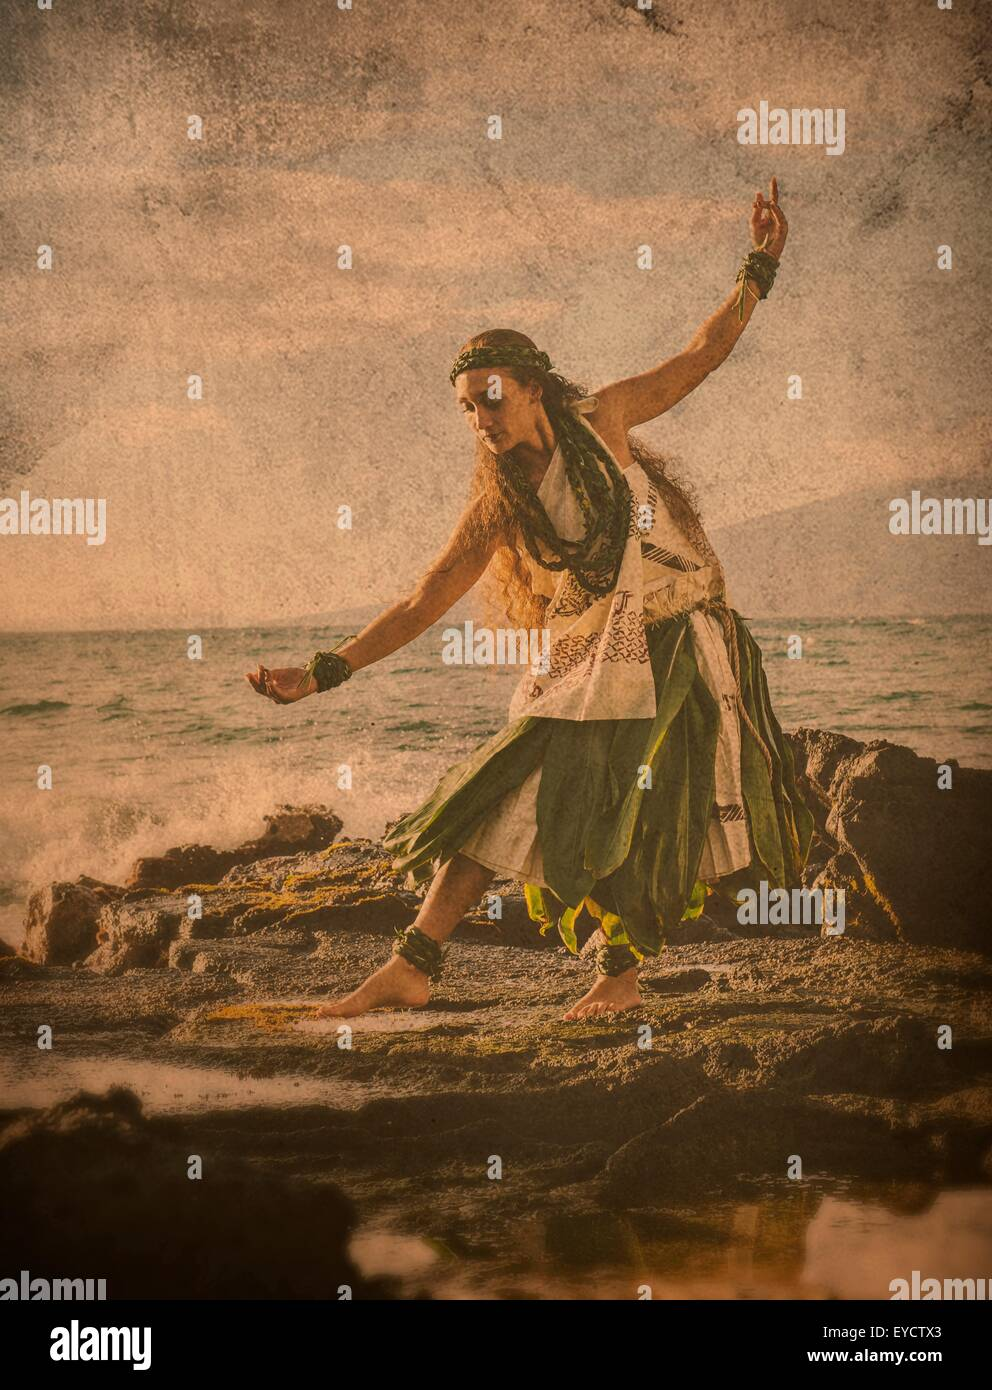 Enhanced image of woman hula dancing on coastal rocks wearing traditional costume, Maui, Hawaii, USA - Stock Image